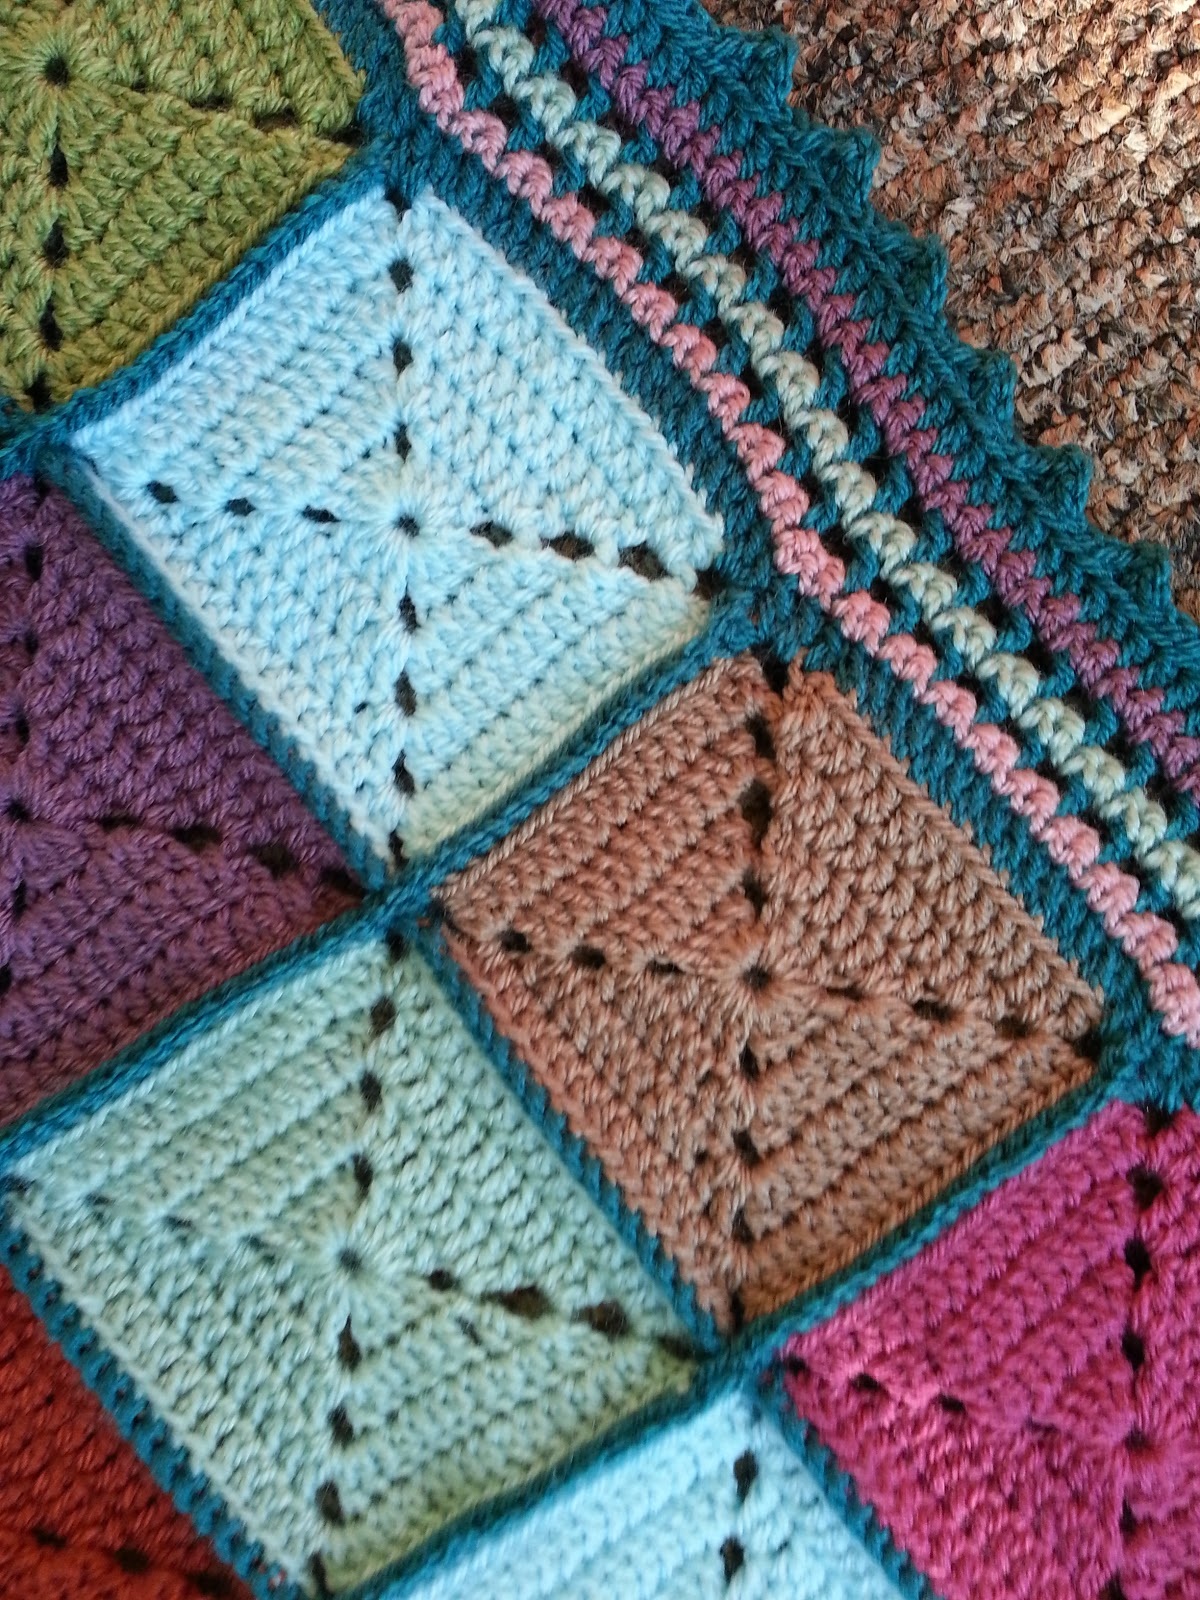 How To Crochet Solid Granny Square Pattern Legitefo For